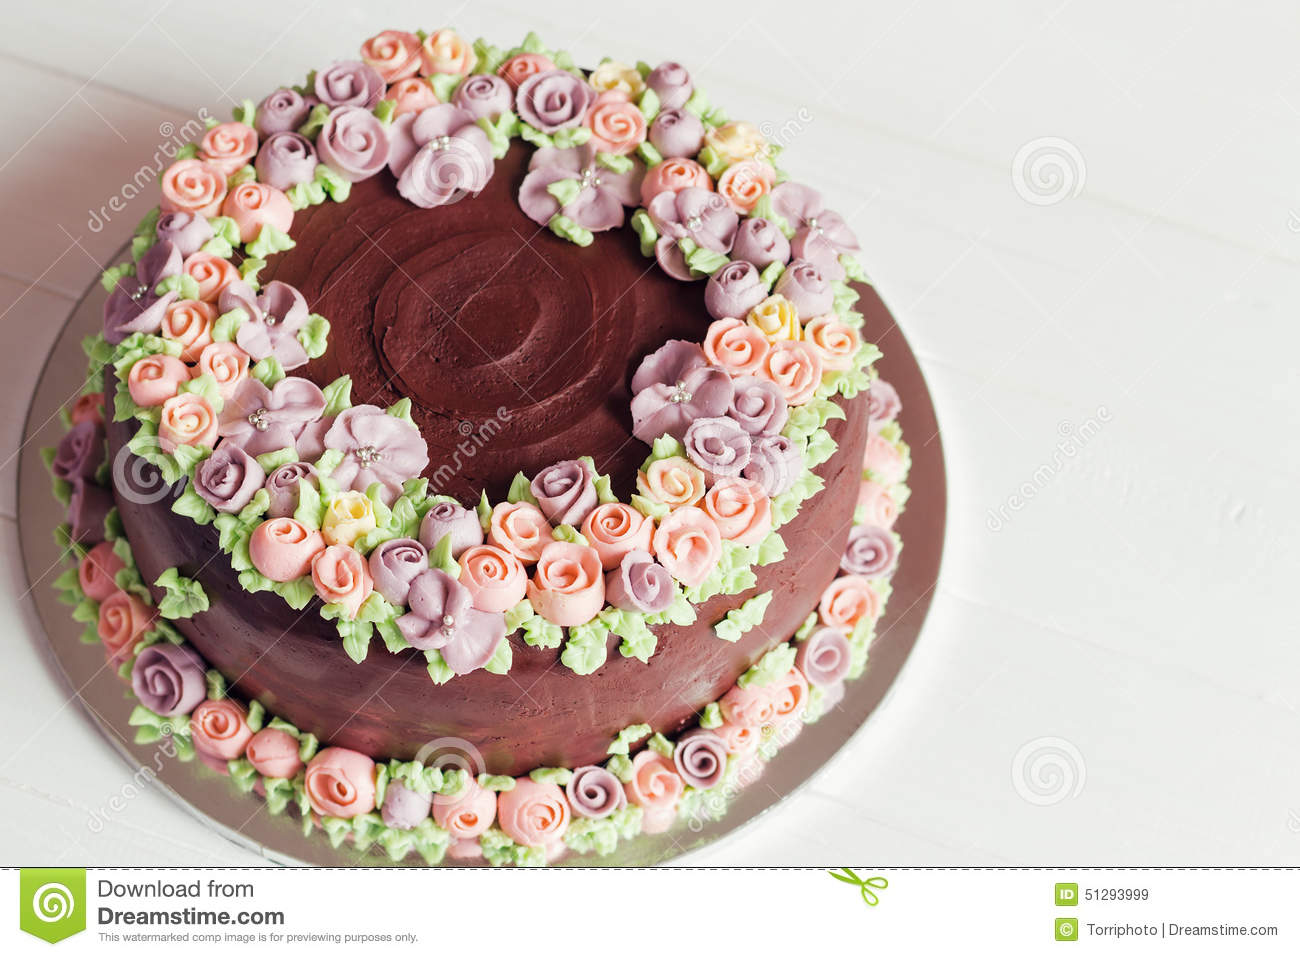 Homemade Cake Decoration Without Cream : Homemade Chocolate Cake With Colorful Cream Flowers Stock ...